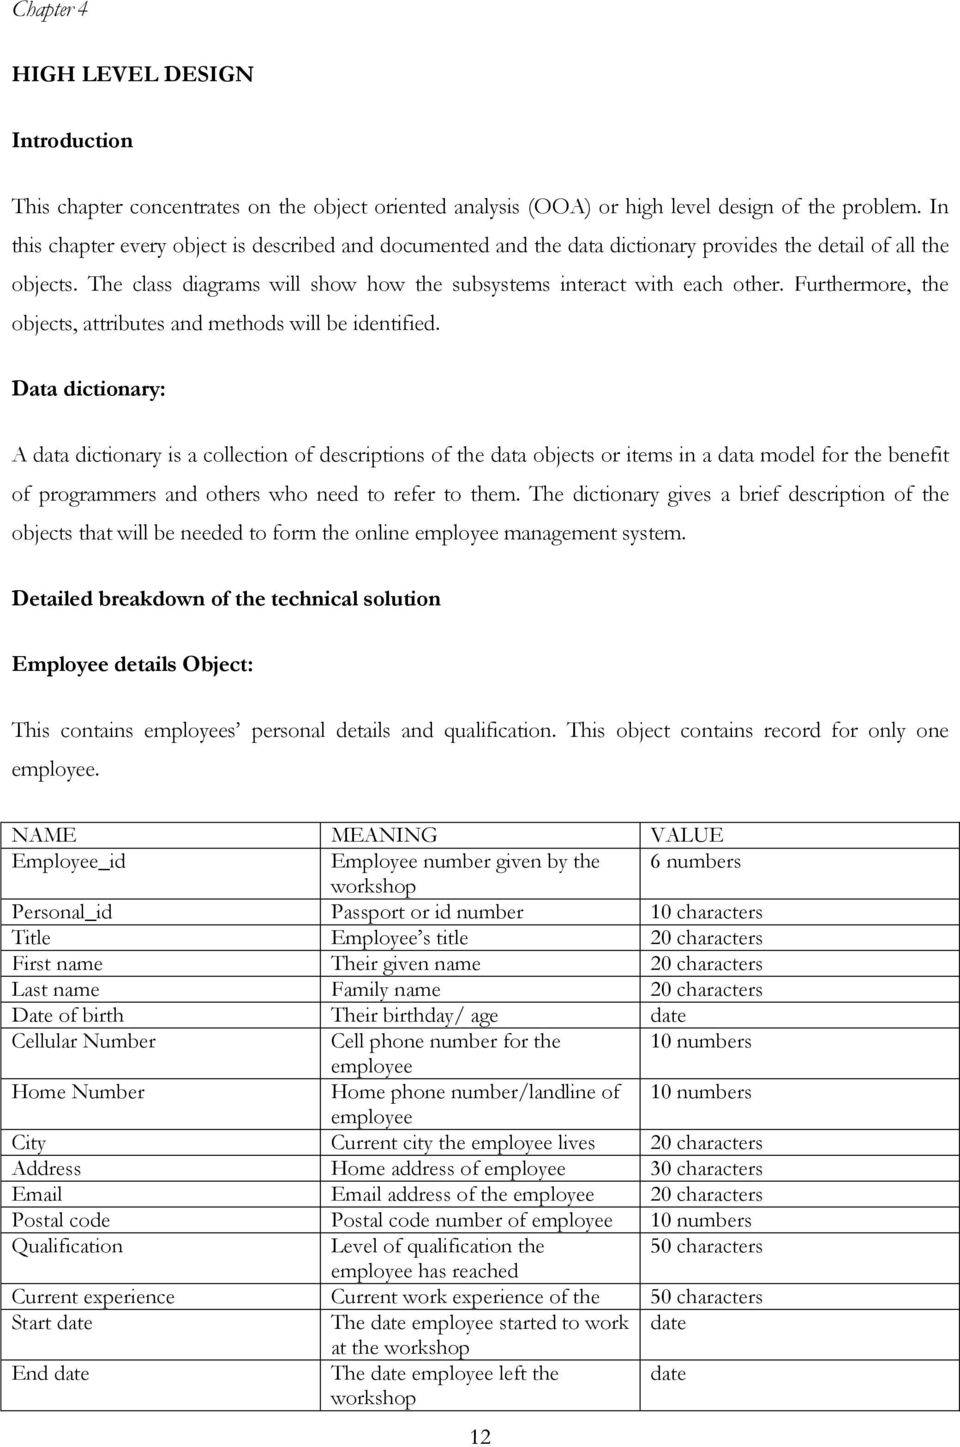 Cover letter for teaching job abroad photo 1